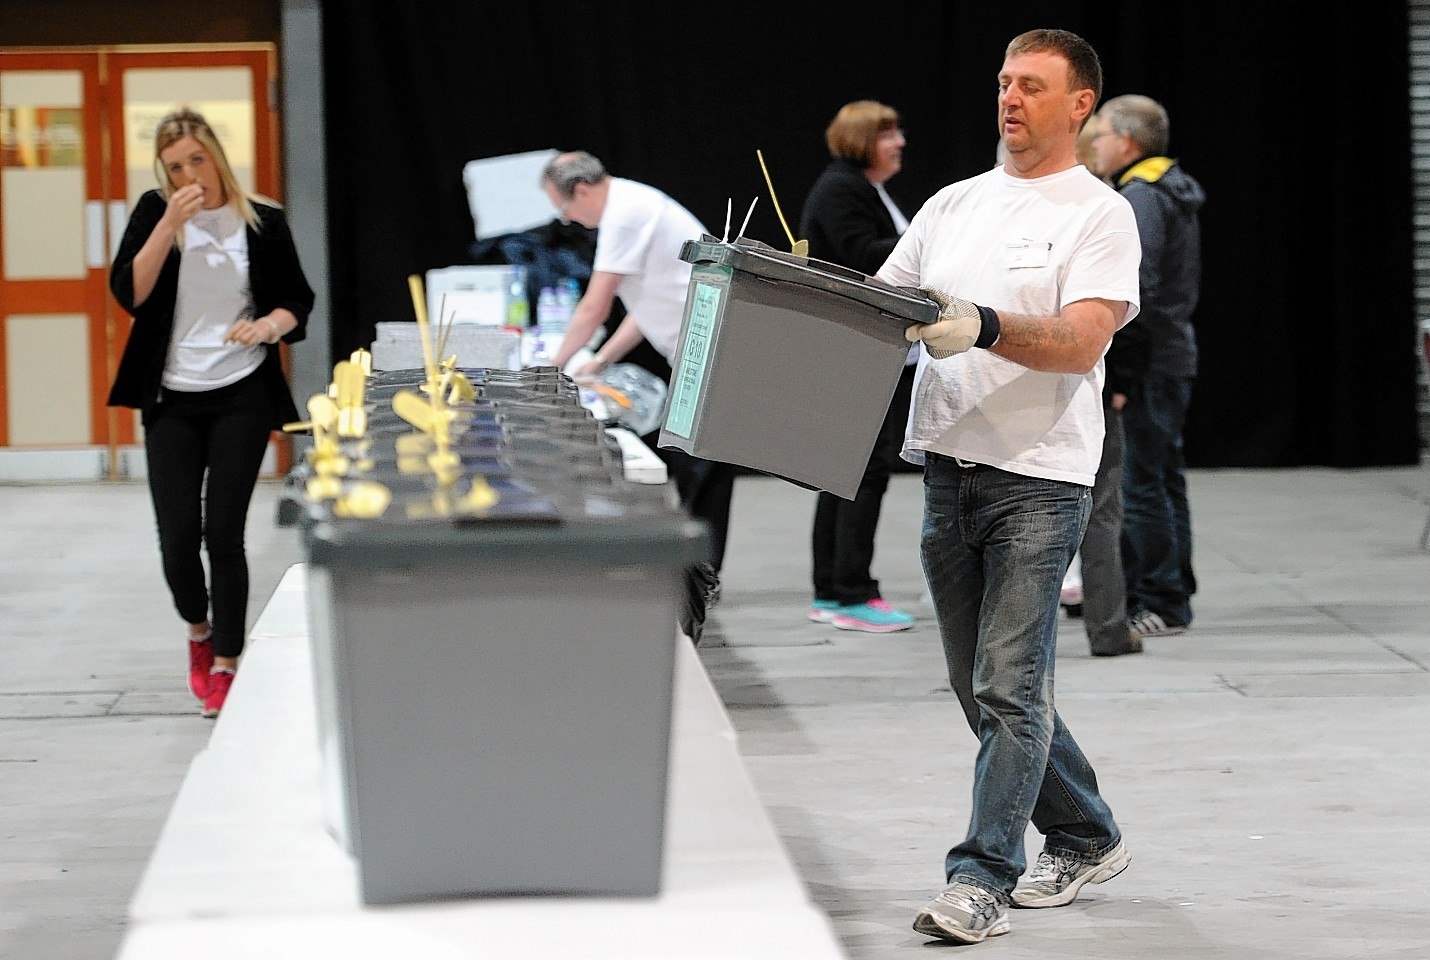 The first ballot boxes from Gordon arrive and are distributed at the AECC